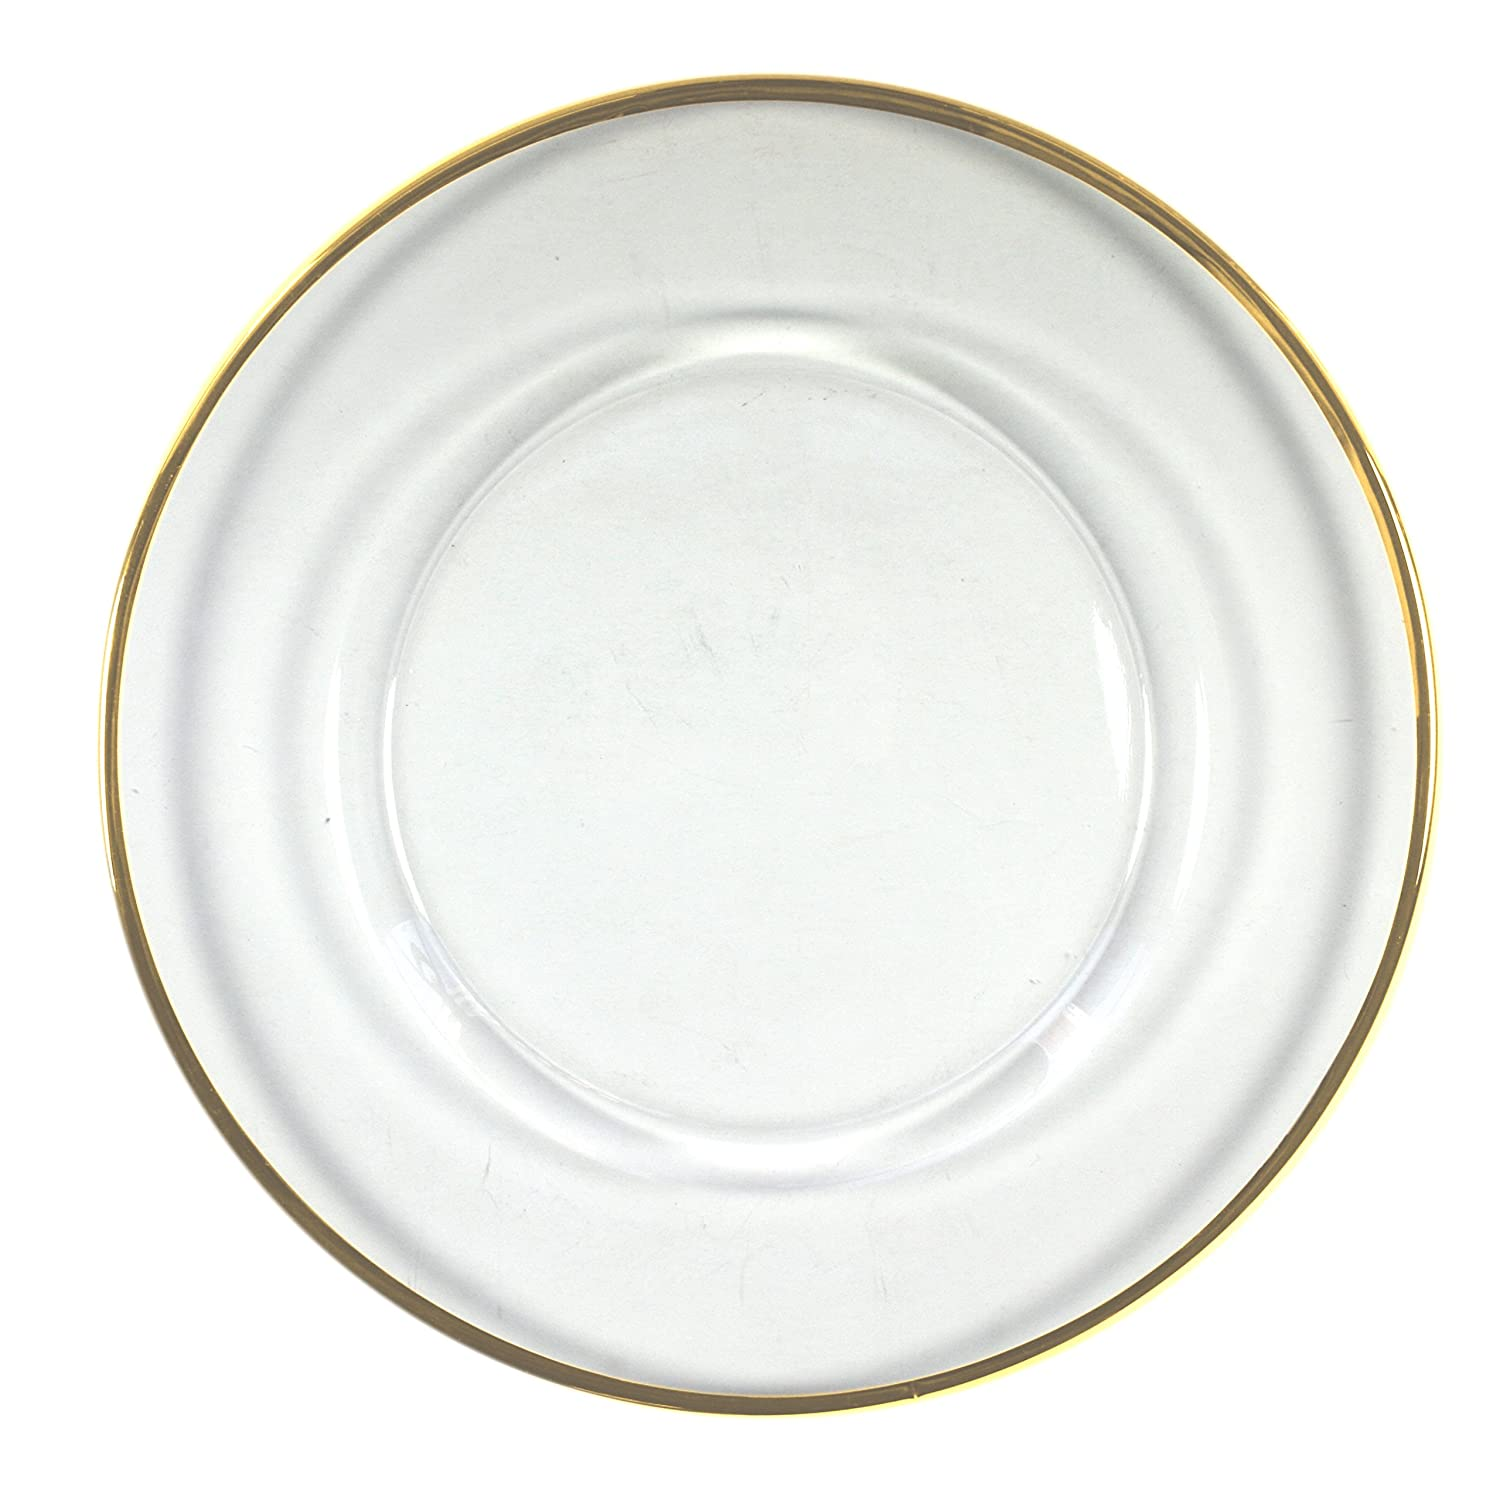 ChargeIt by Jay Round Glass Charger Plate with Gold Rim Jay Imports 1900002